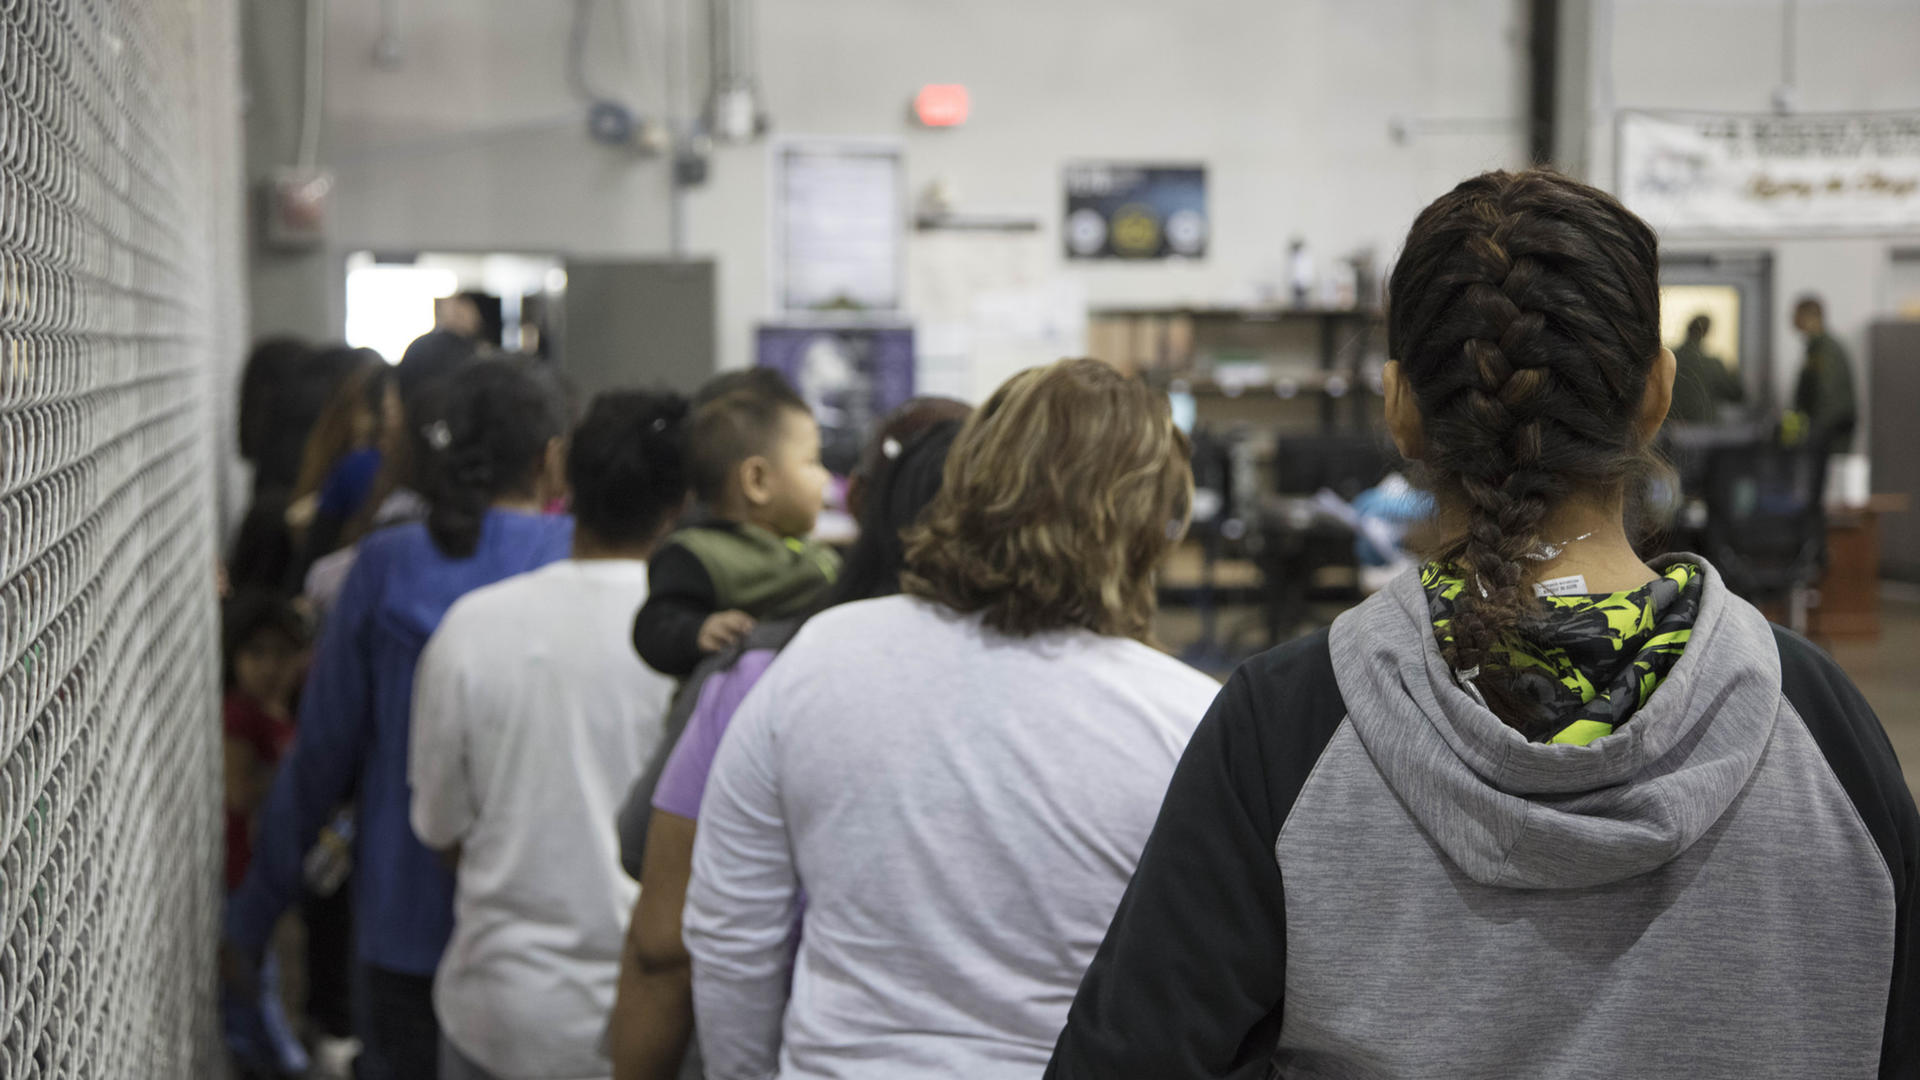 Women and children wait in line to be processed at a U.S. Border Patrol facility in Texas